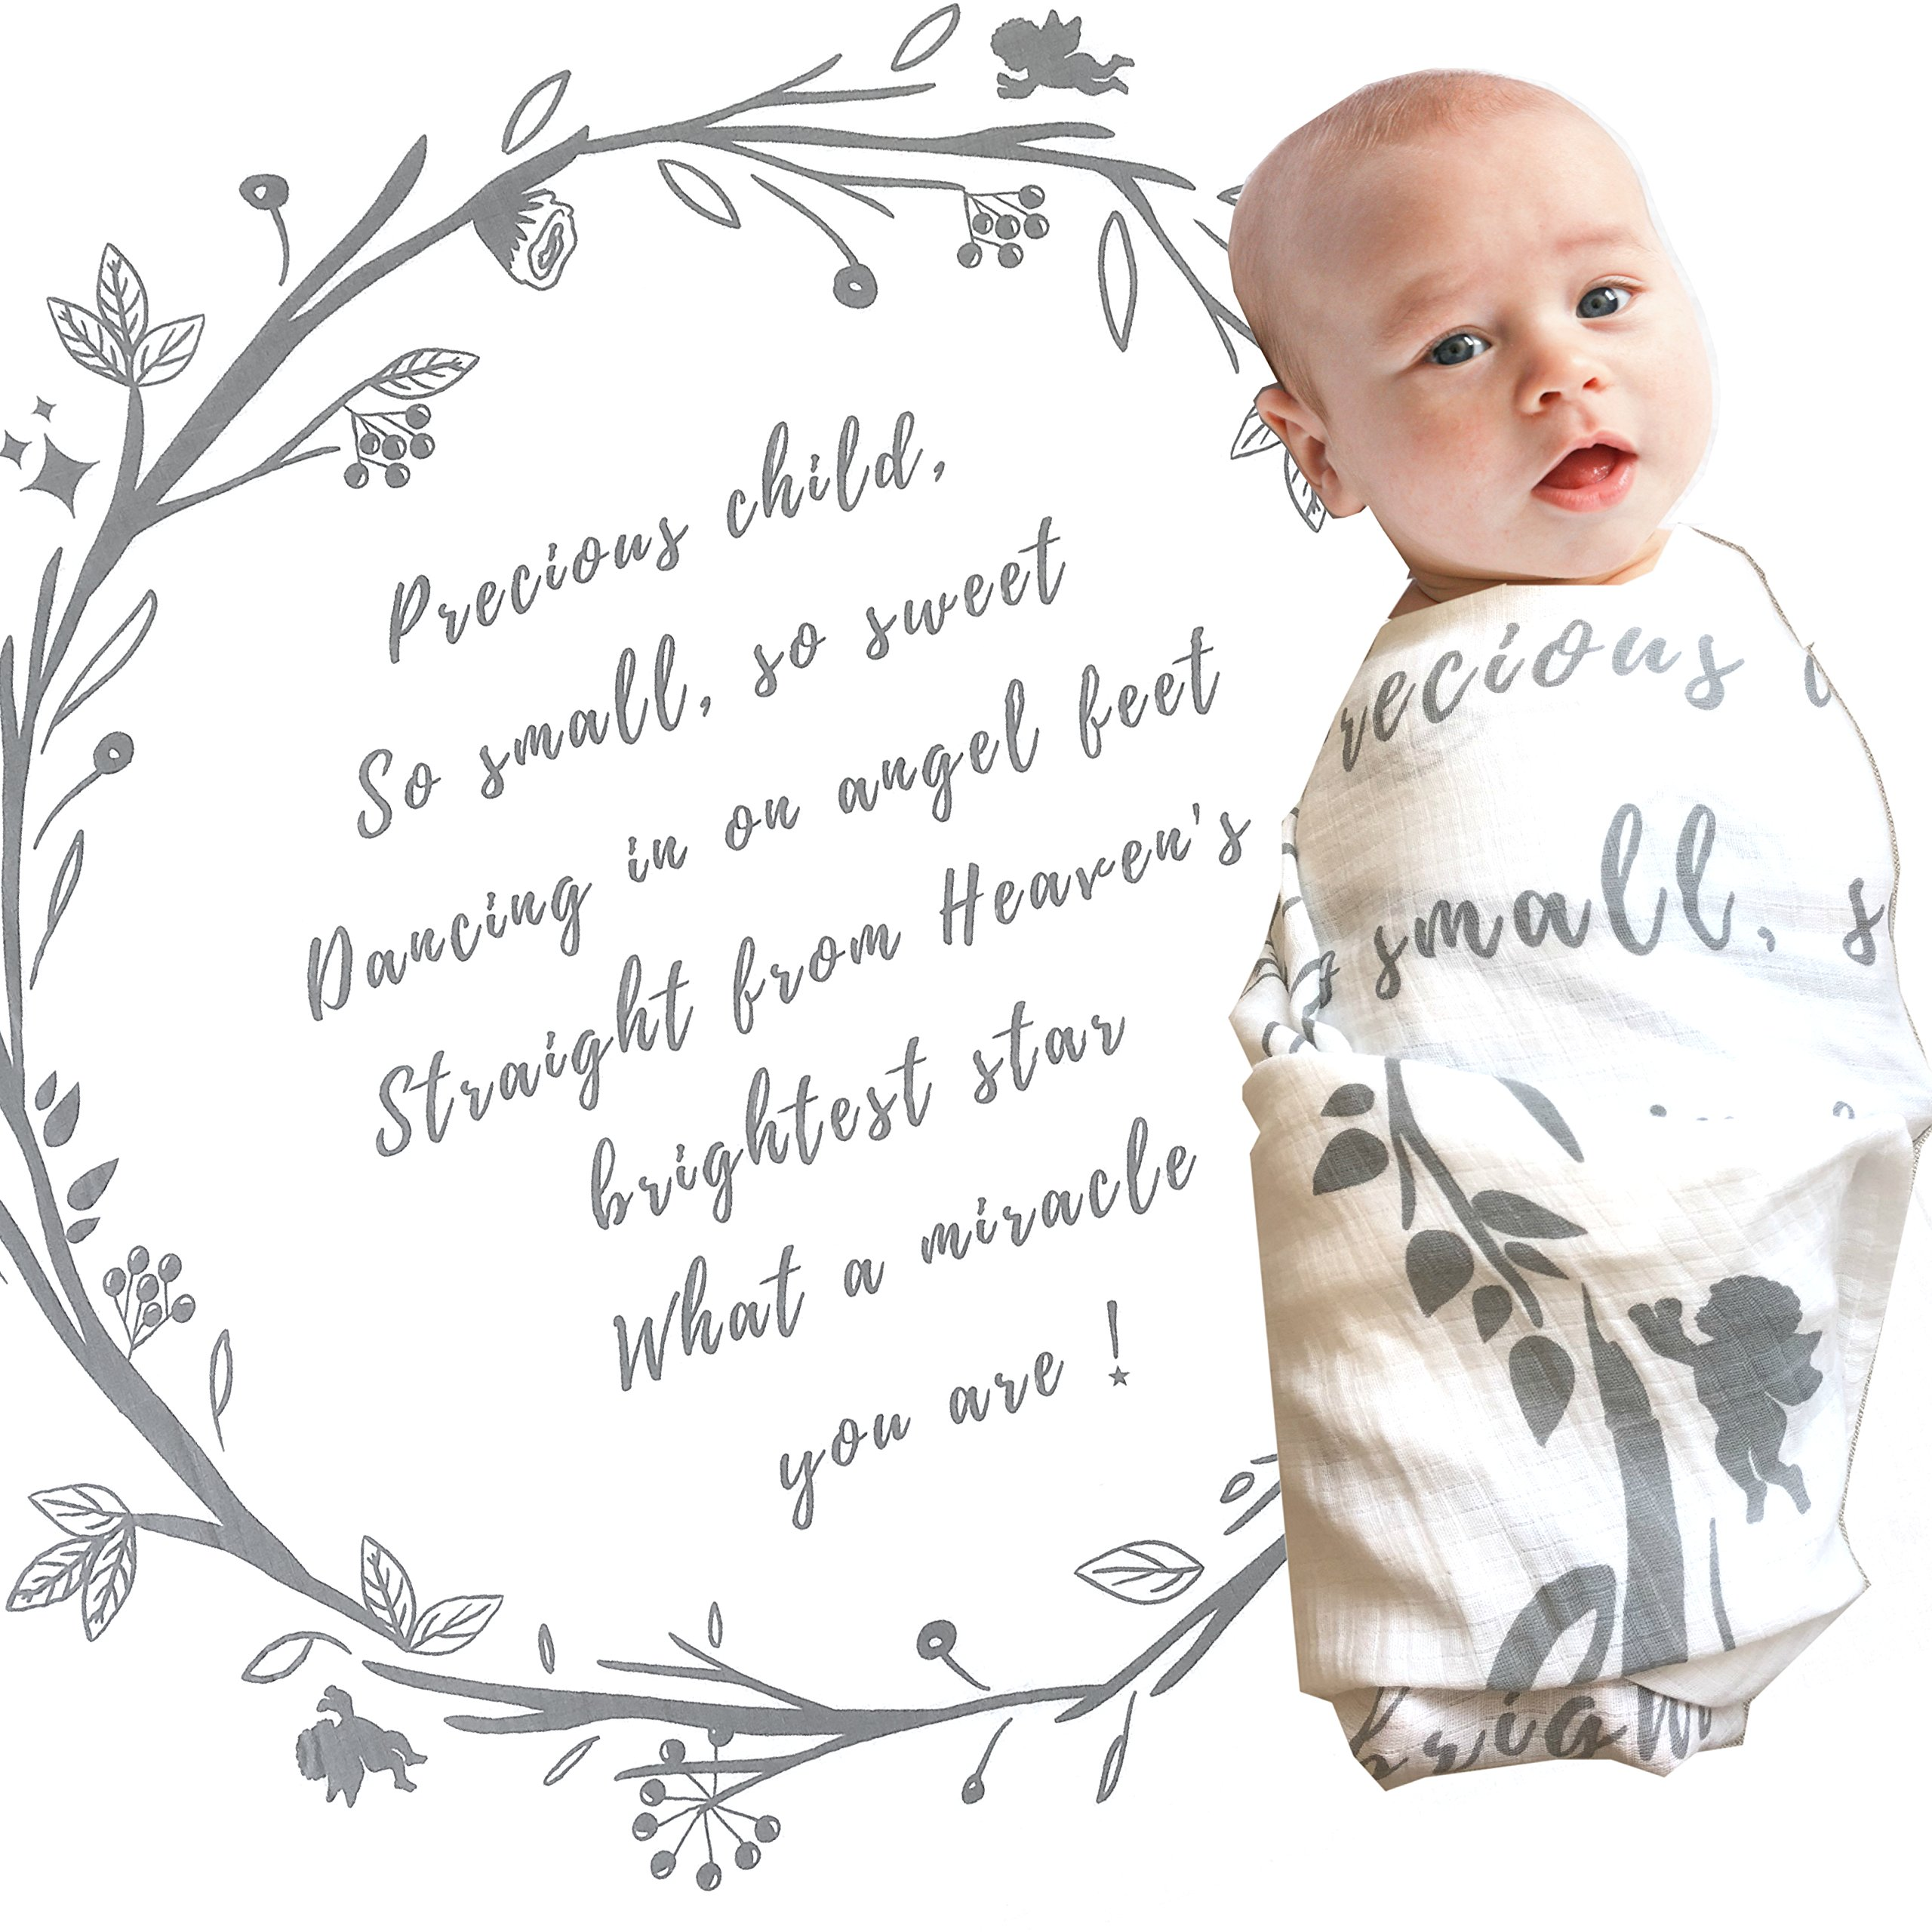 Baby Swaddle Blanket with Baby Quote – 100% Organic Cotton Muslin Swaddle Wrap with Angel Poem for Baby Shower, Christening Gift, Baptism Gift – Receiving Blanket, Privacy Throw by Majestic Baby